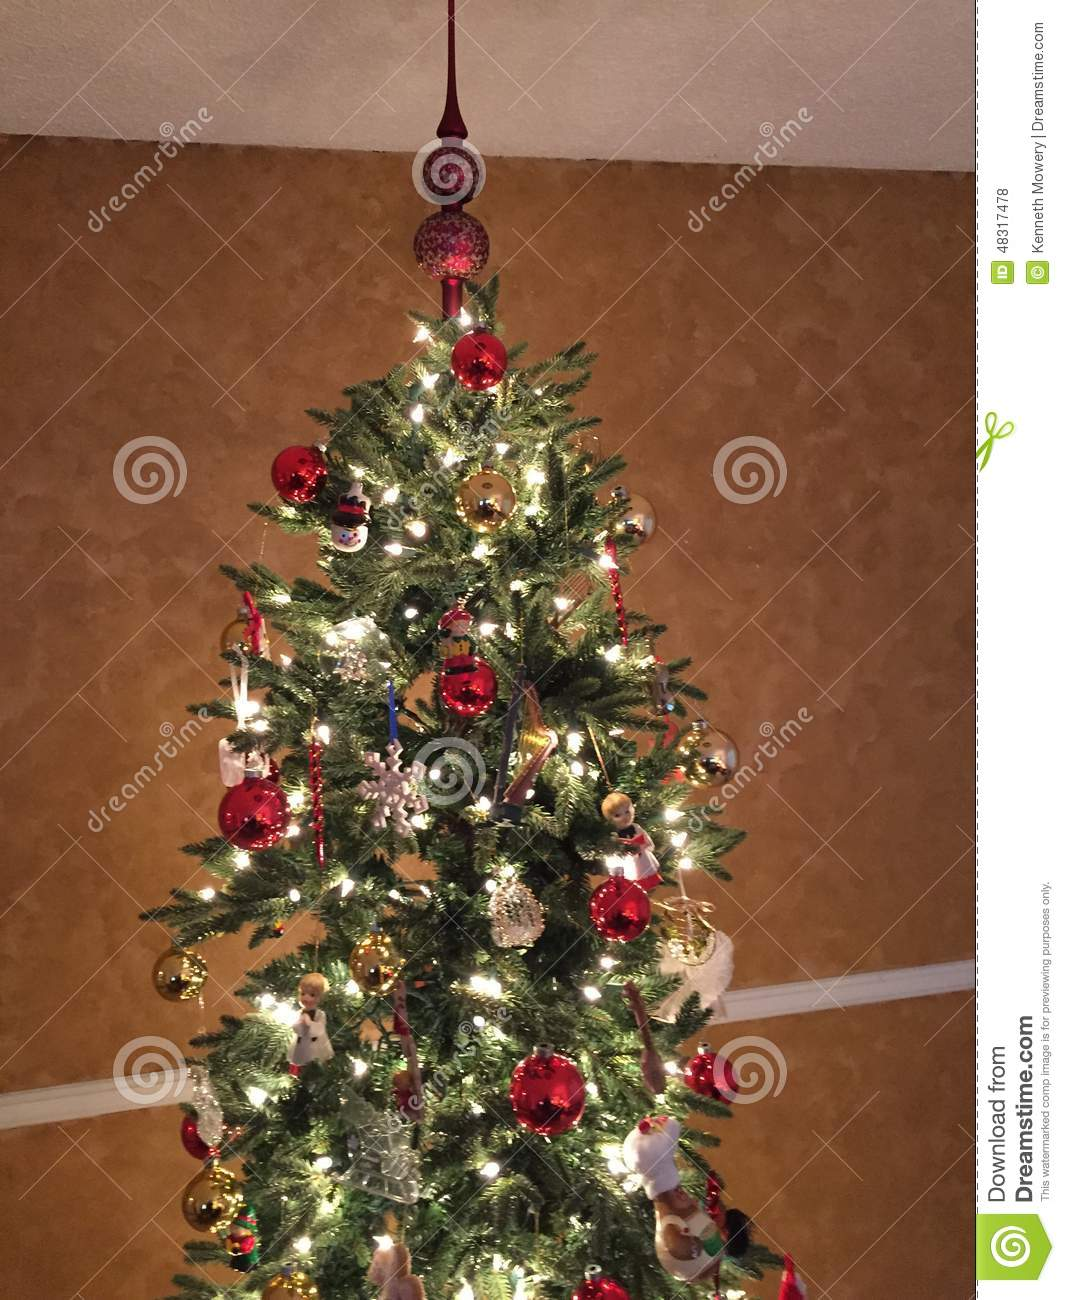 Christmas tree with lights and ornaments stock photo for White tree red ornaments